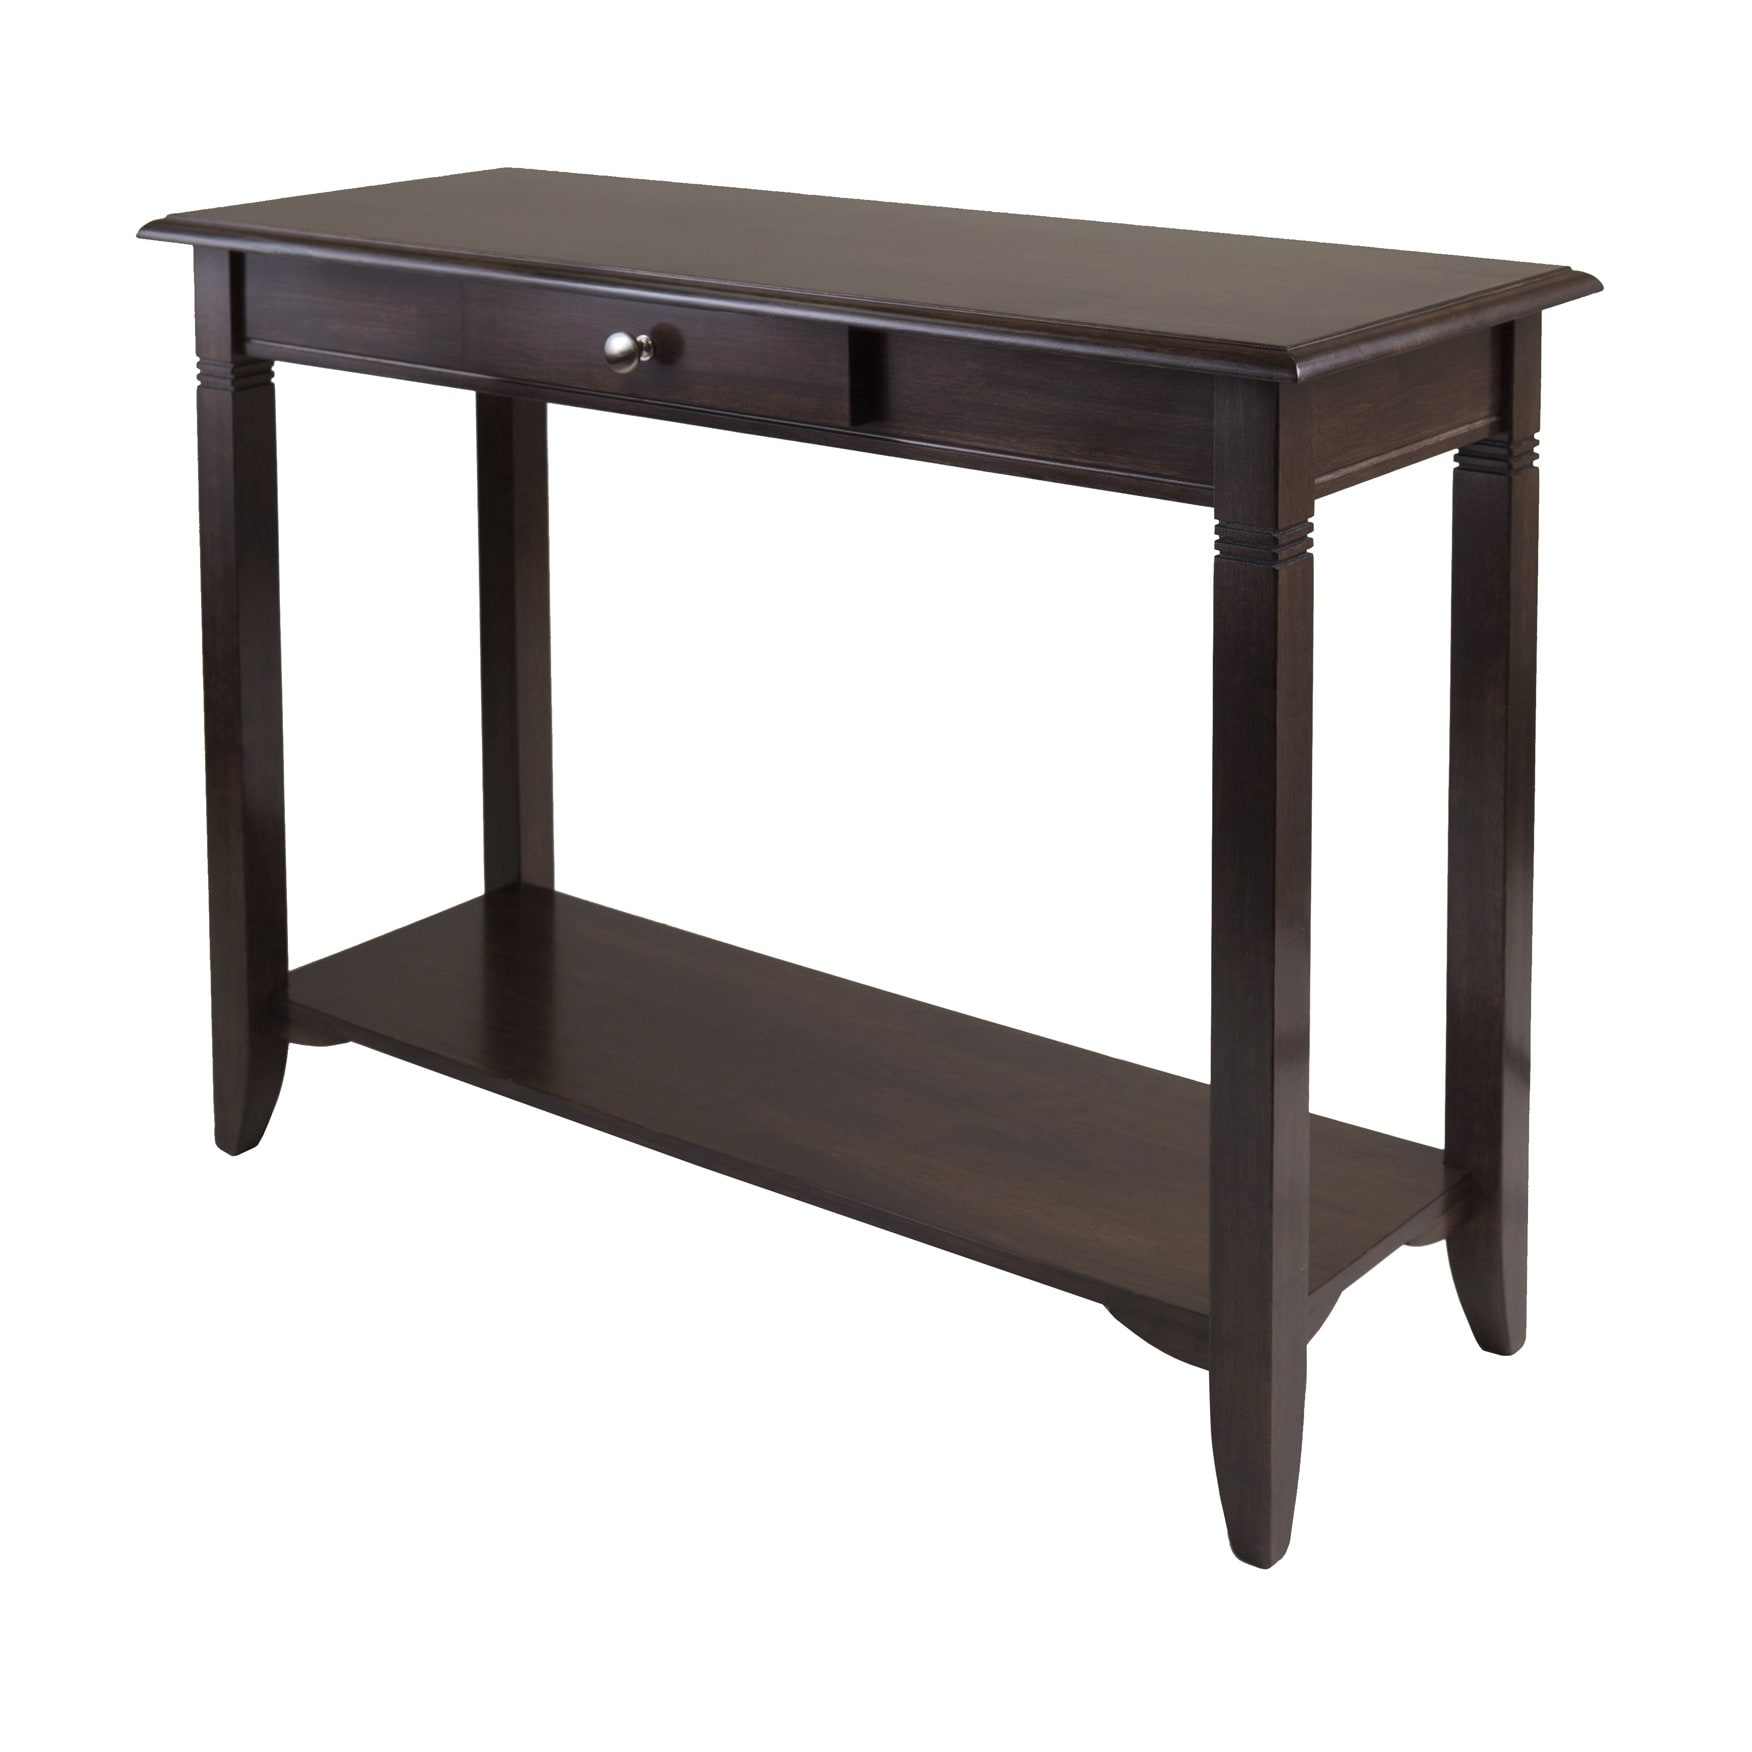 Winsome Nolan Console Table with Drawer (Cappuccino), Brown